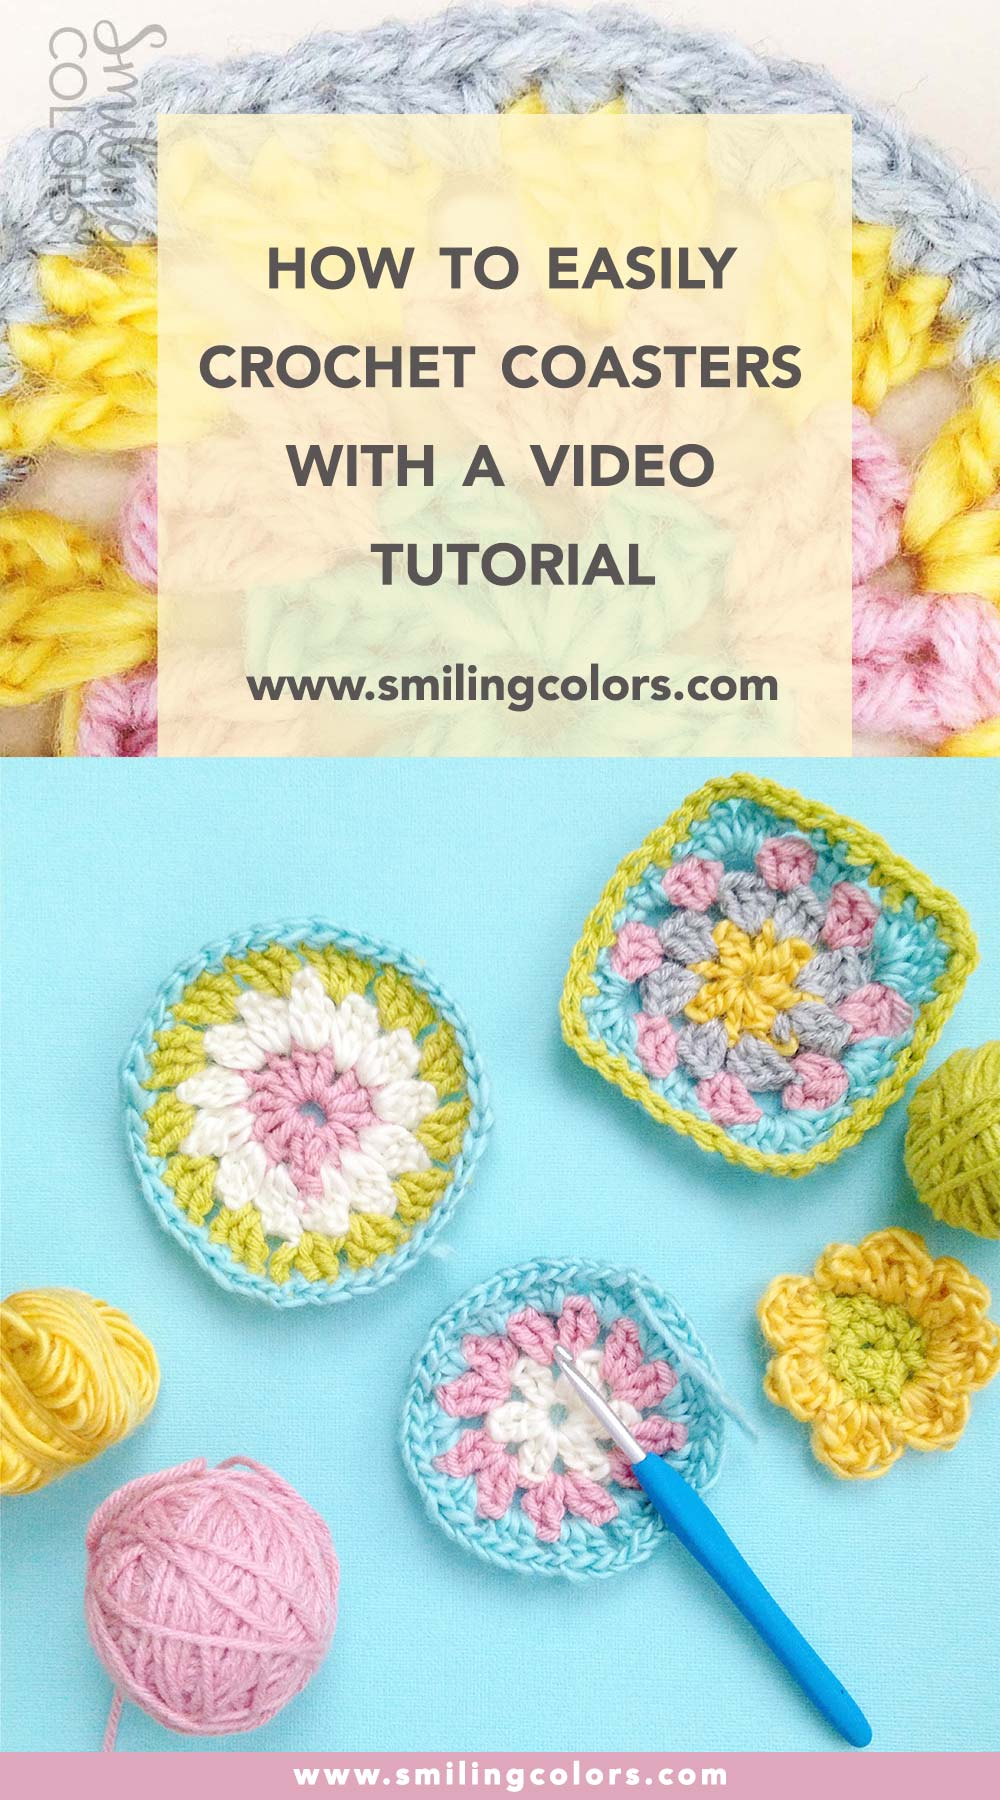 How To Easily Crochet Coasters With A Video For Beginners Smitha Katti